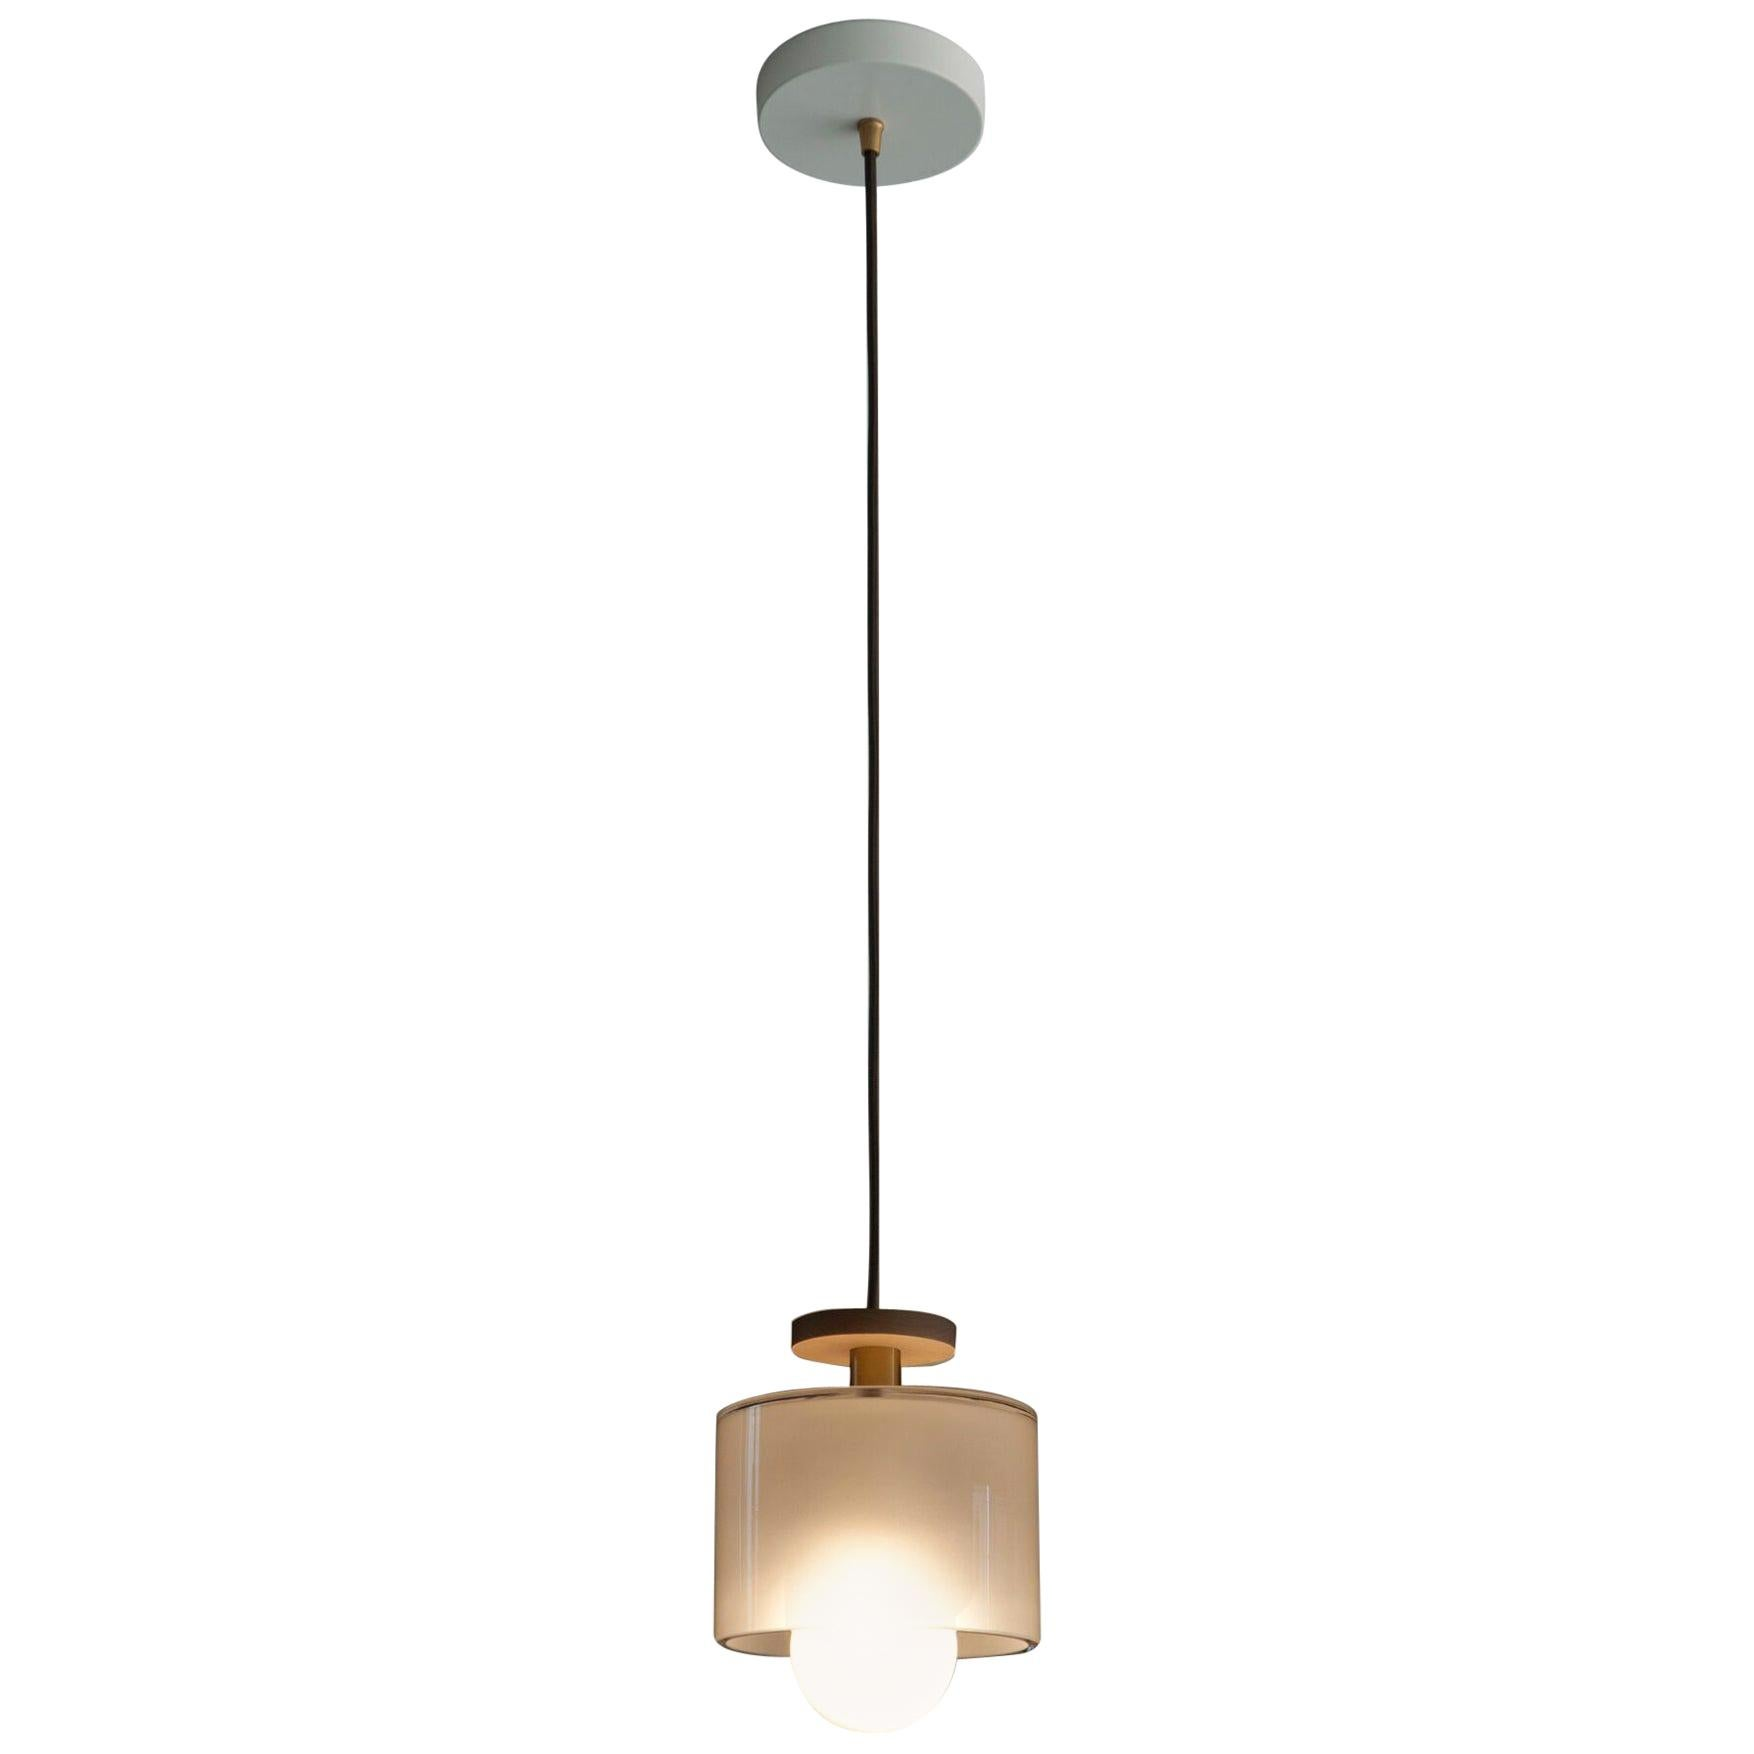 Spun Pendant Light with Frosted Glass Shade Fixture